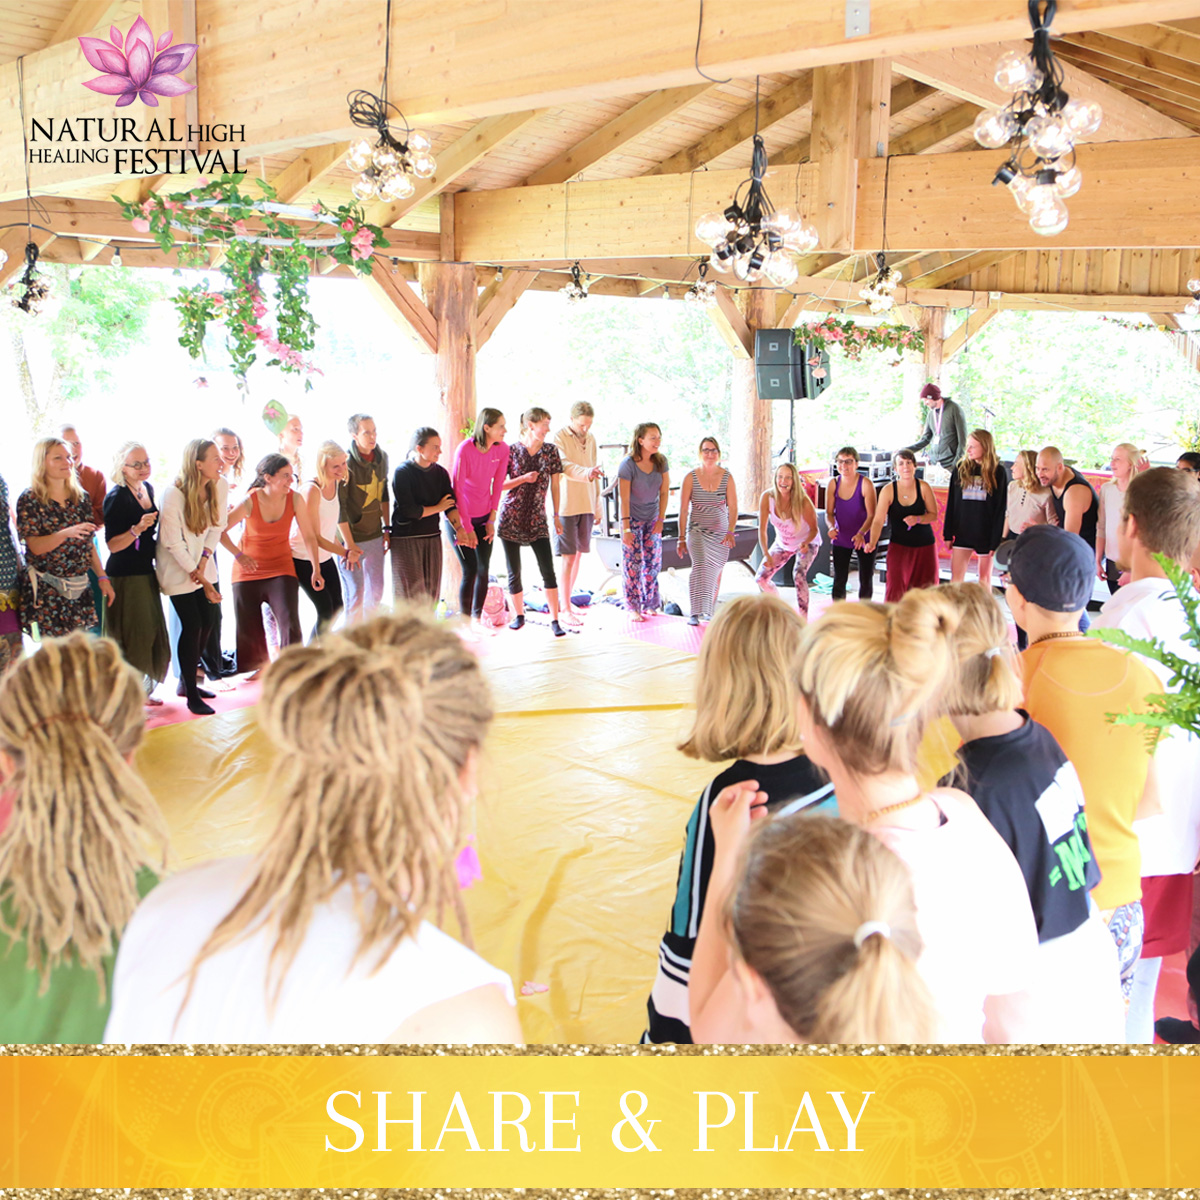 share and play at natural high healing festival